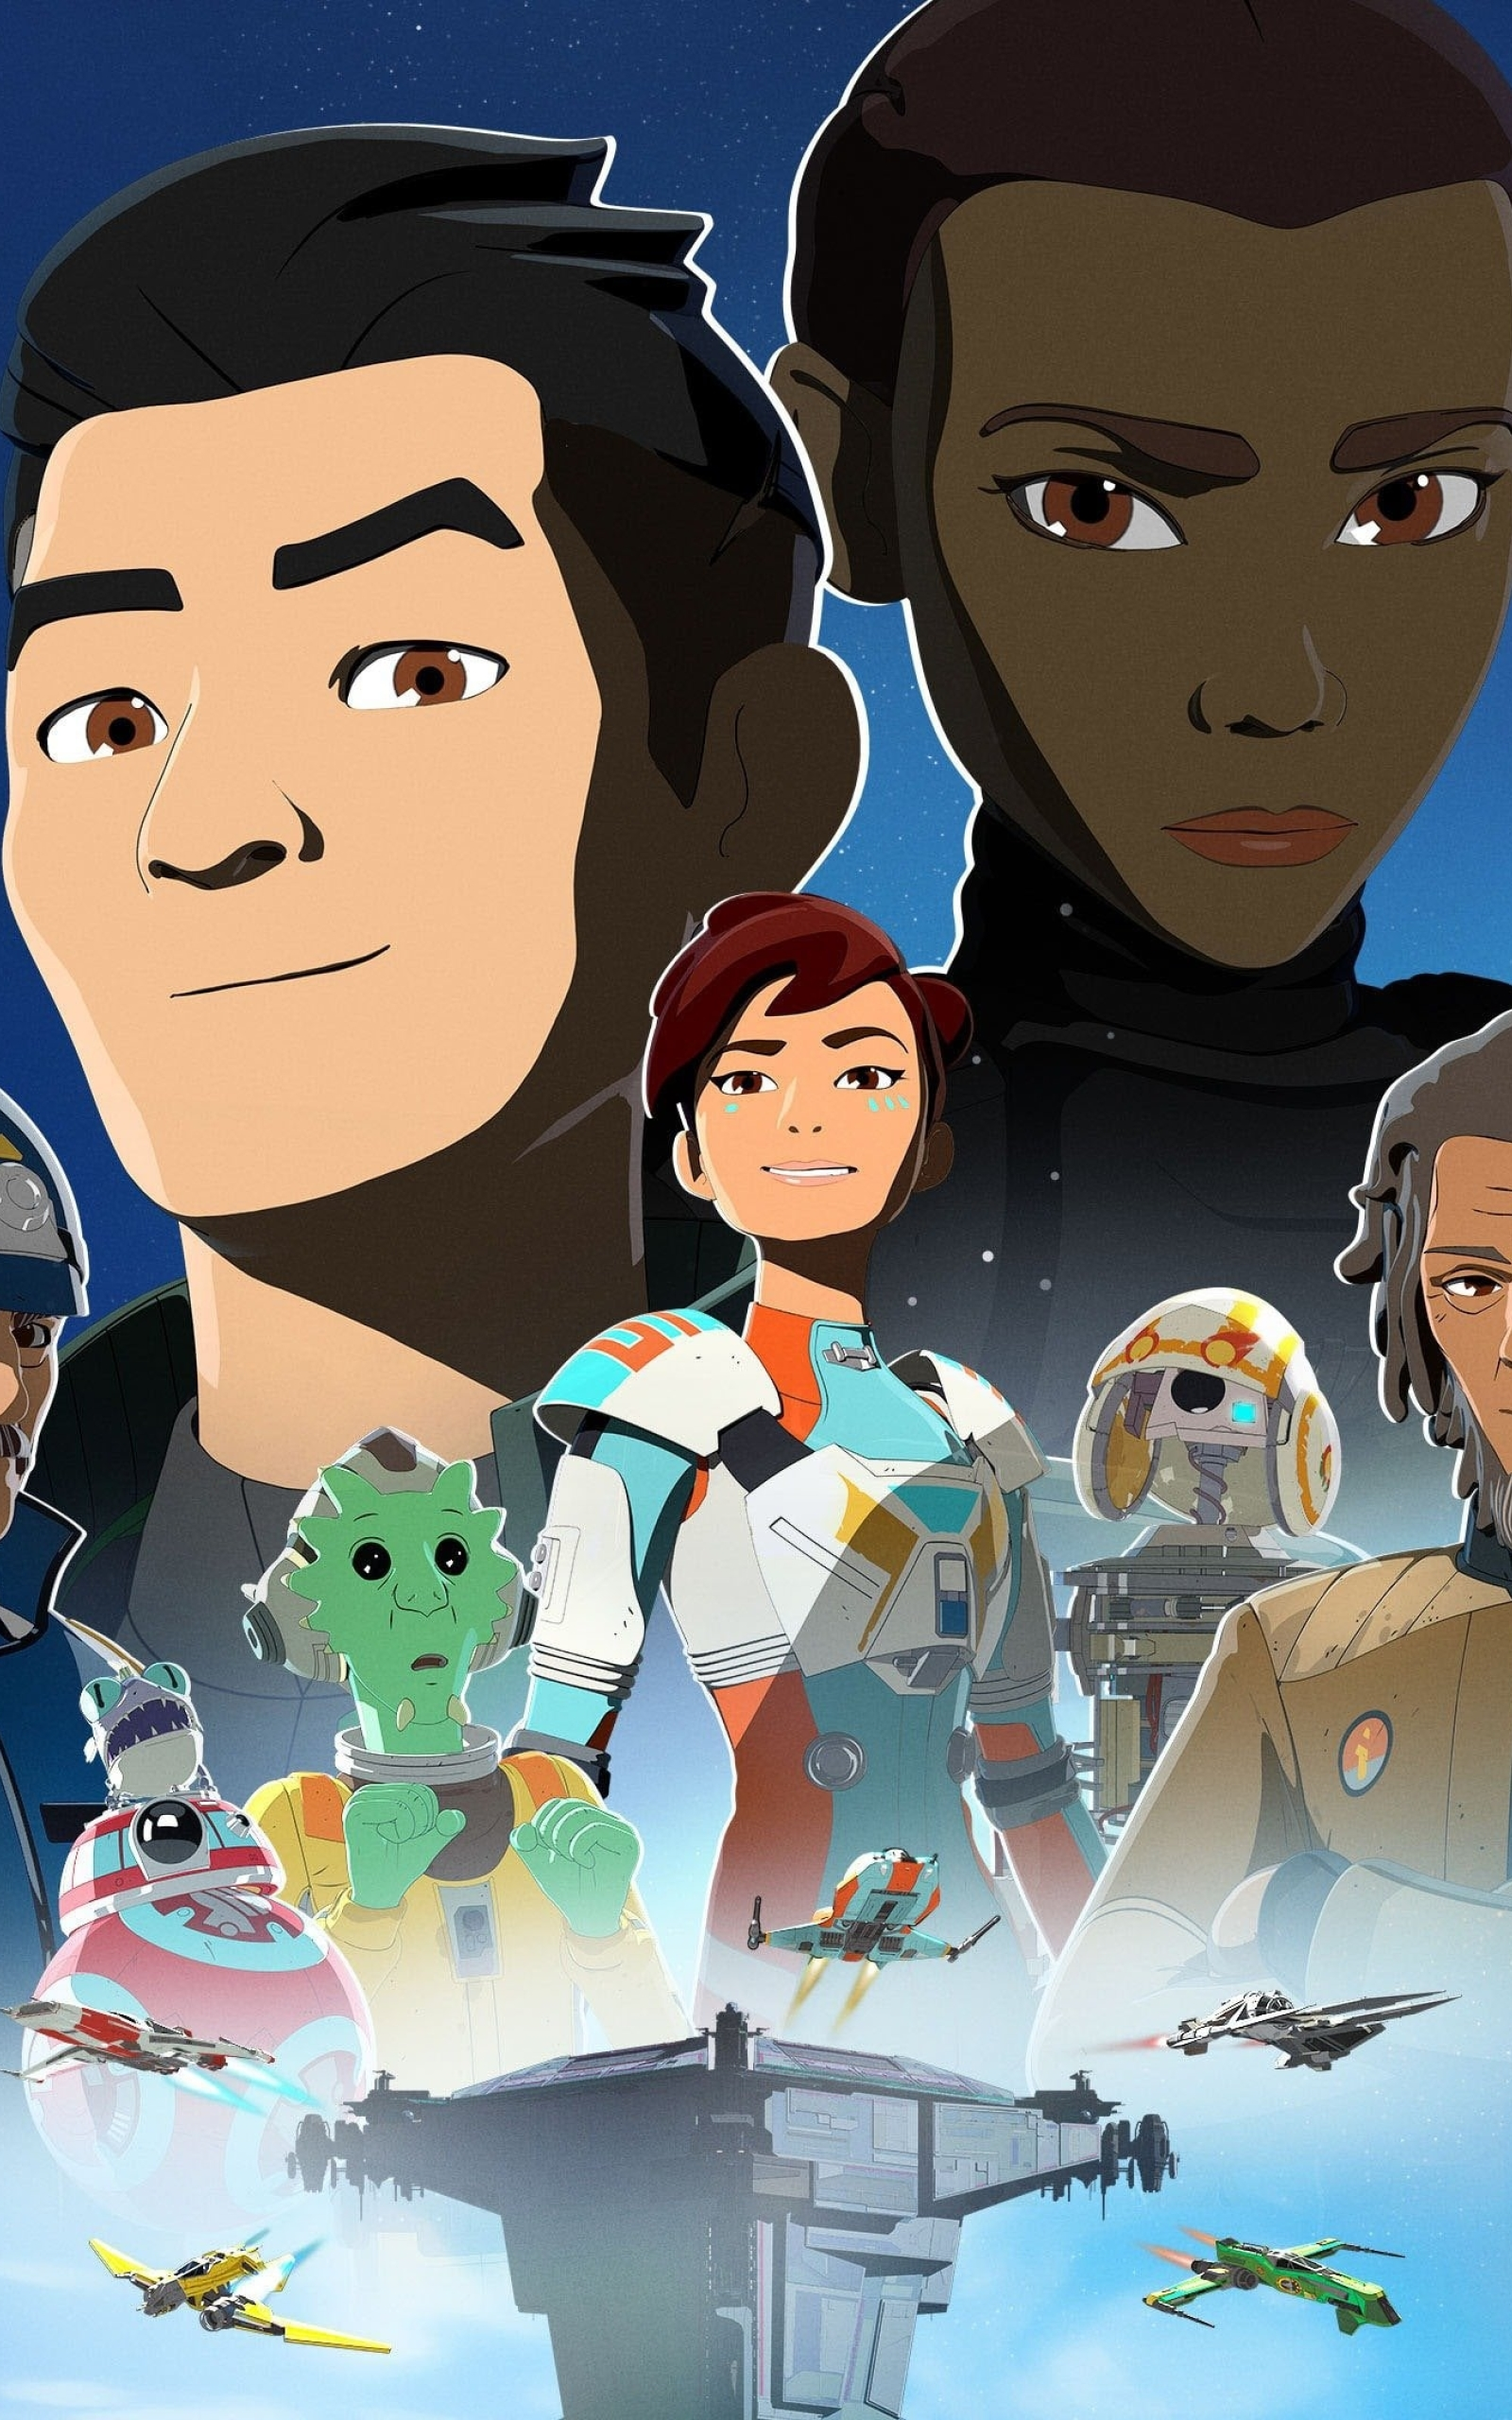 1600x2560 Star Wars Resistance 1600x2560 Resolution Wallpaper Hd Tv Series 4k Wallpapers Images Photos And Background